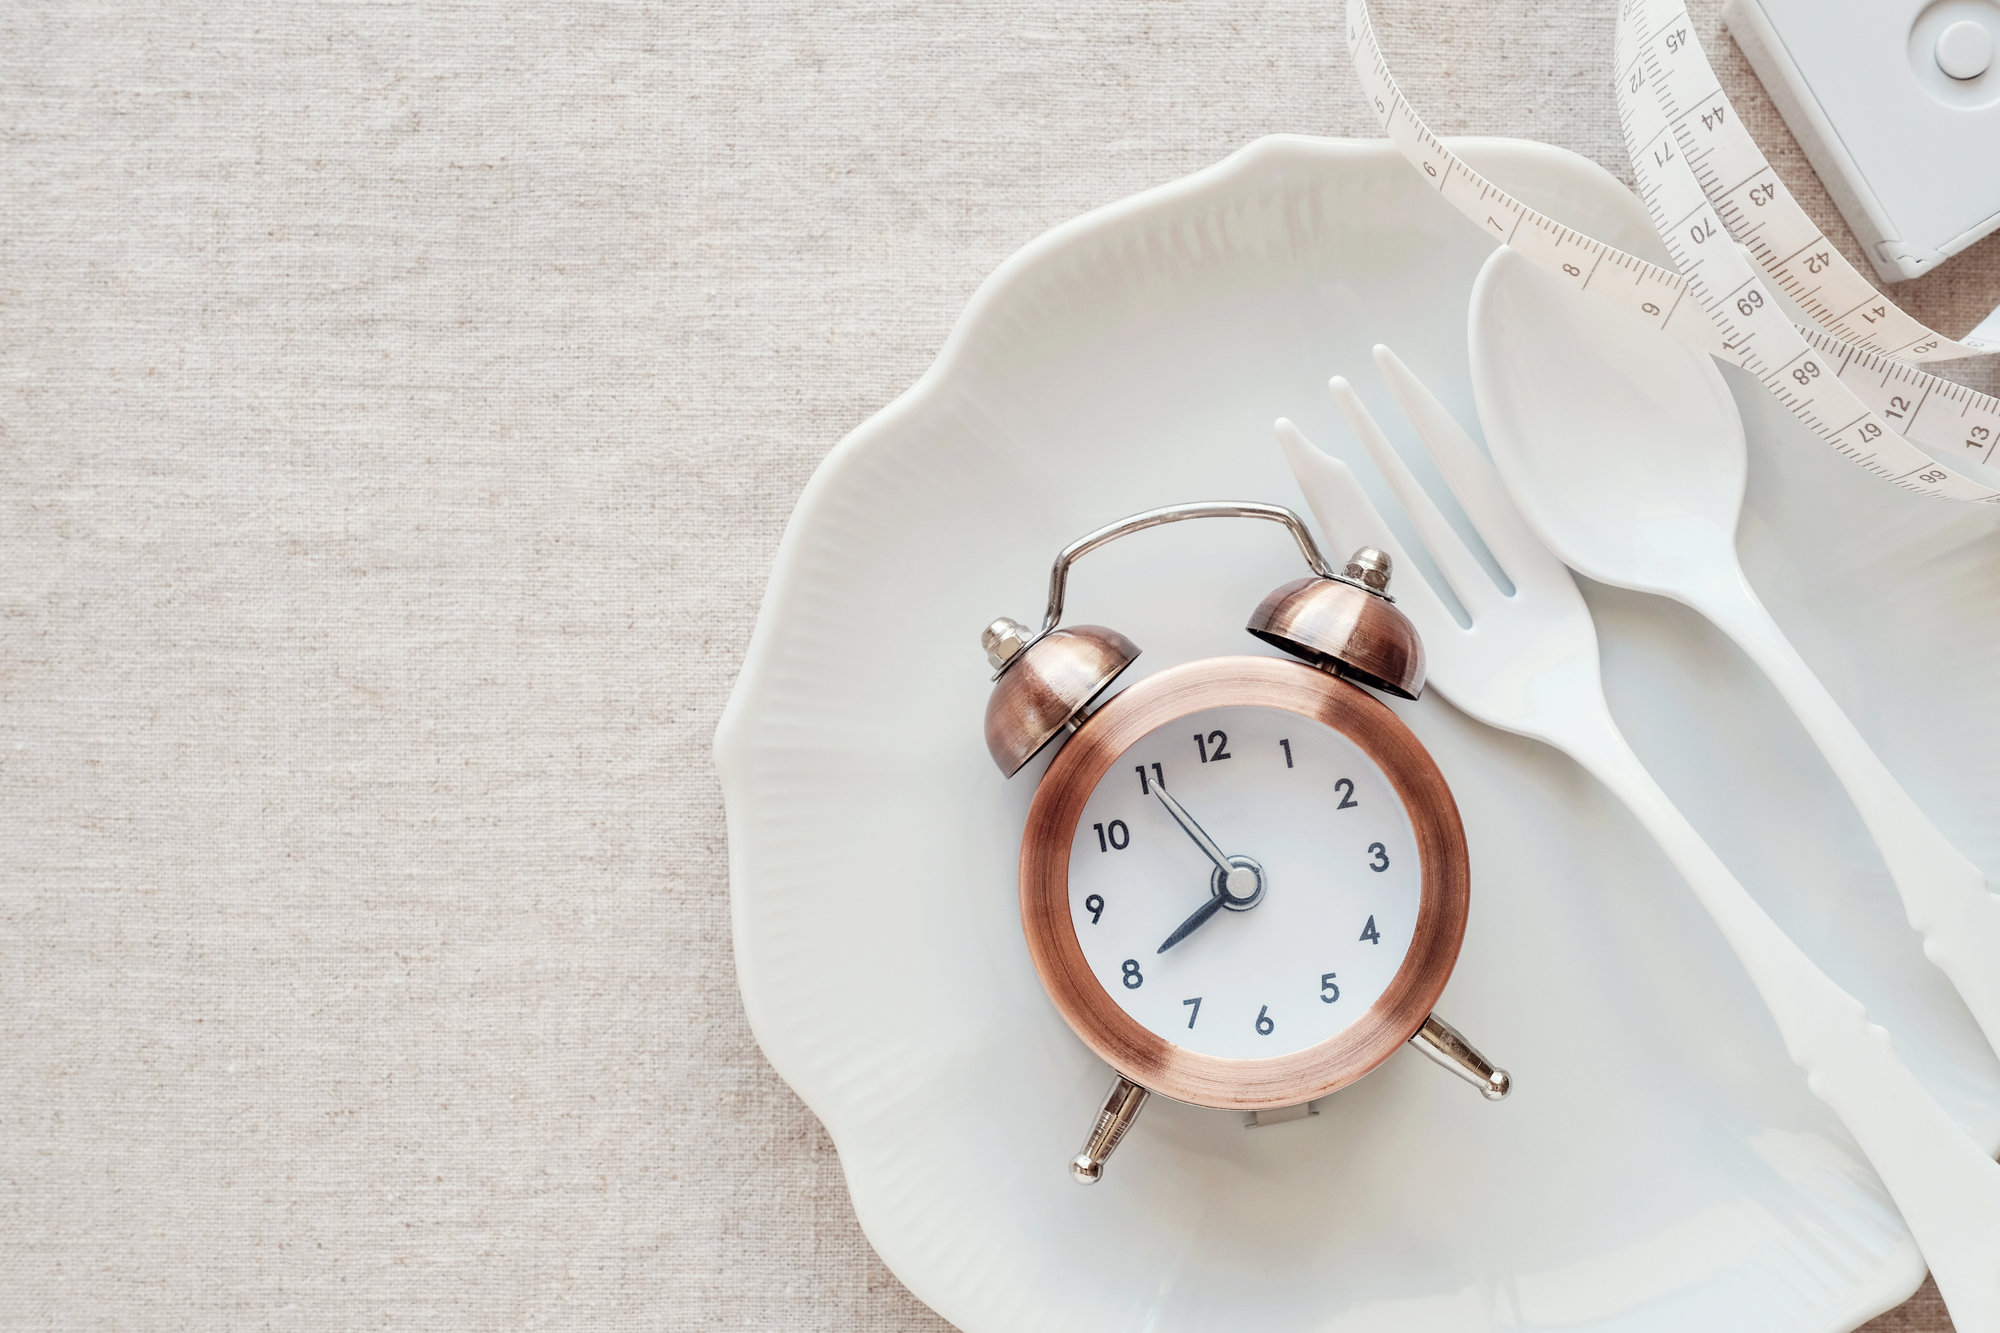 Review of intermittent fasting research suggests broad health benefits